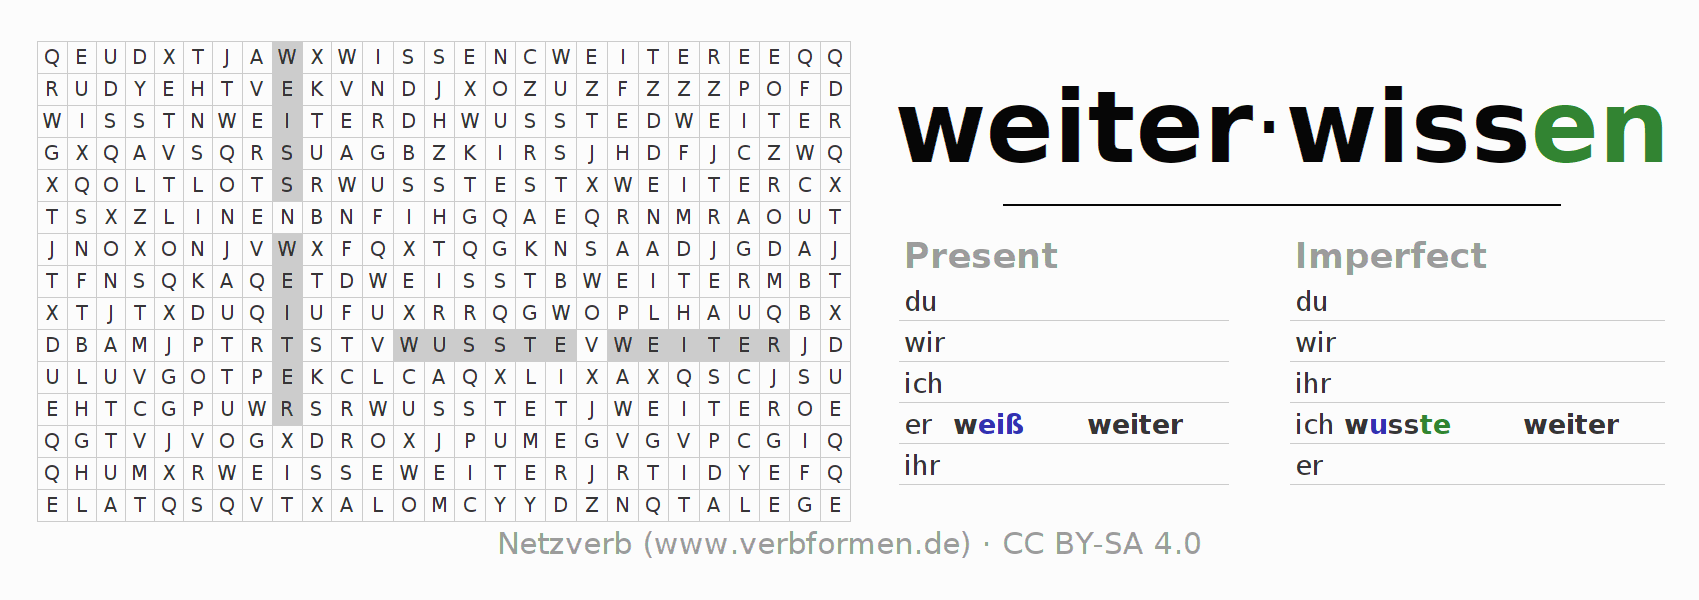 Word search puzzle for the conjugation of the verb weiterwissen